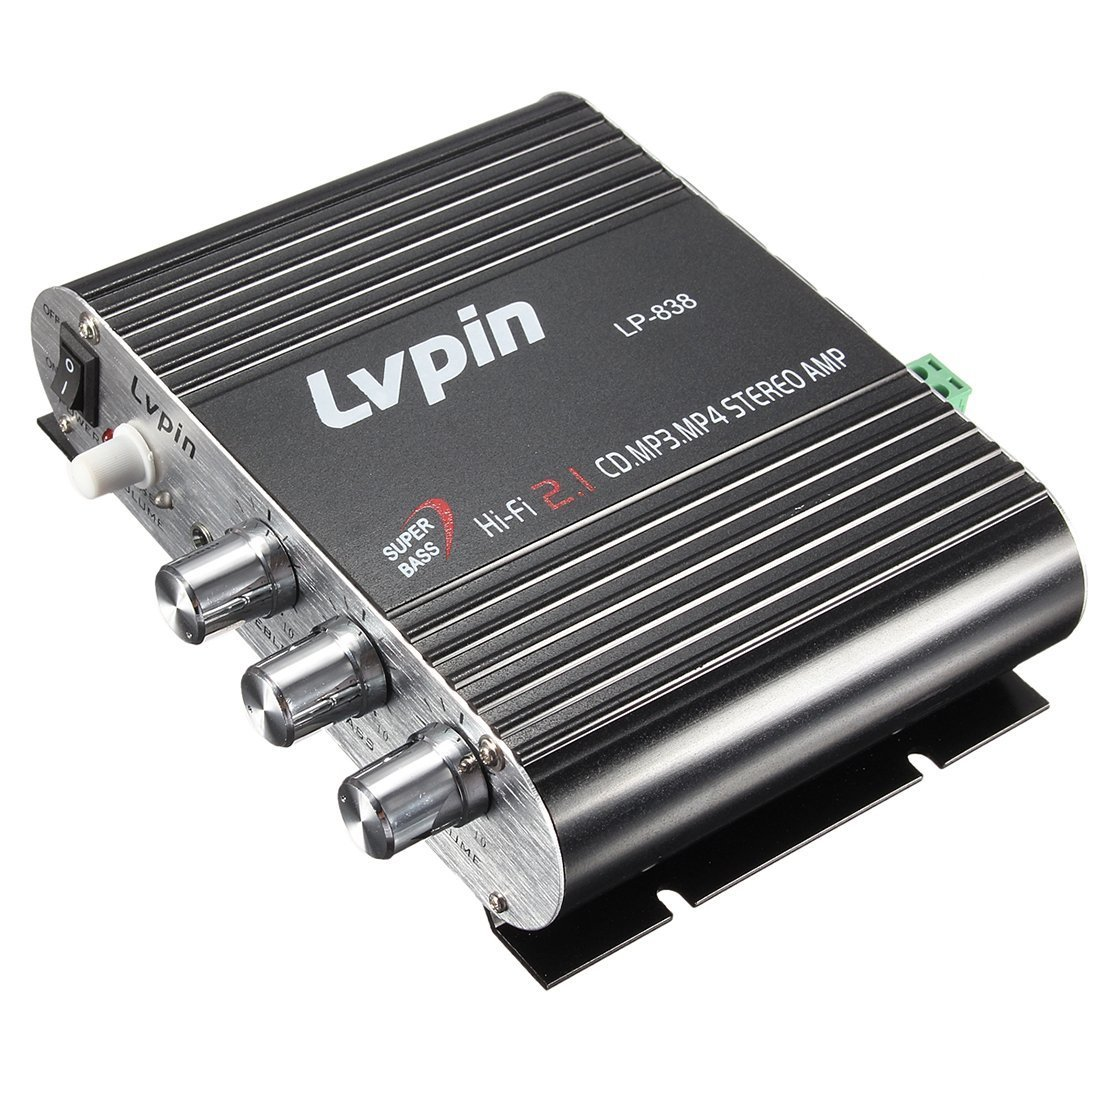 Amazon.com: Stereo Amplifier - LVPIN 12V 200W Mini Hi-Fi Stereo Amplifier MP3 Car Radio Channels 2 House Super Bass: Car Electronics